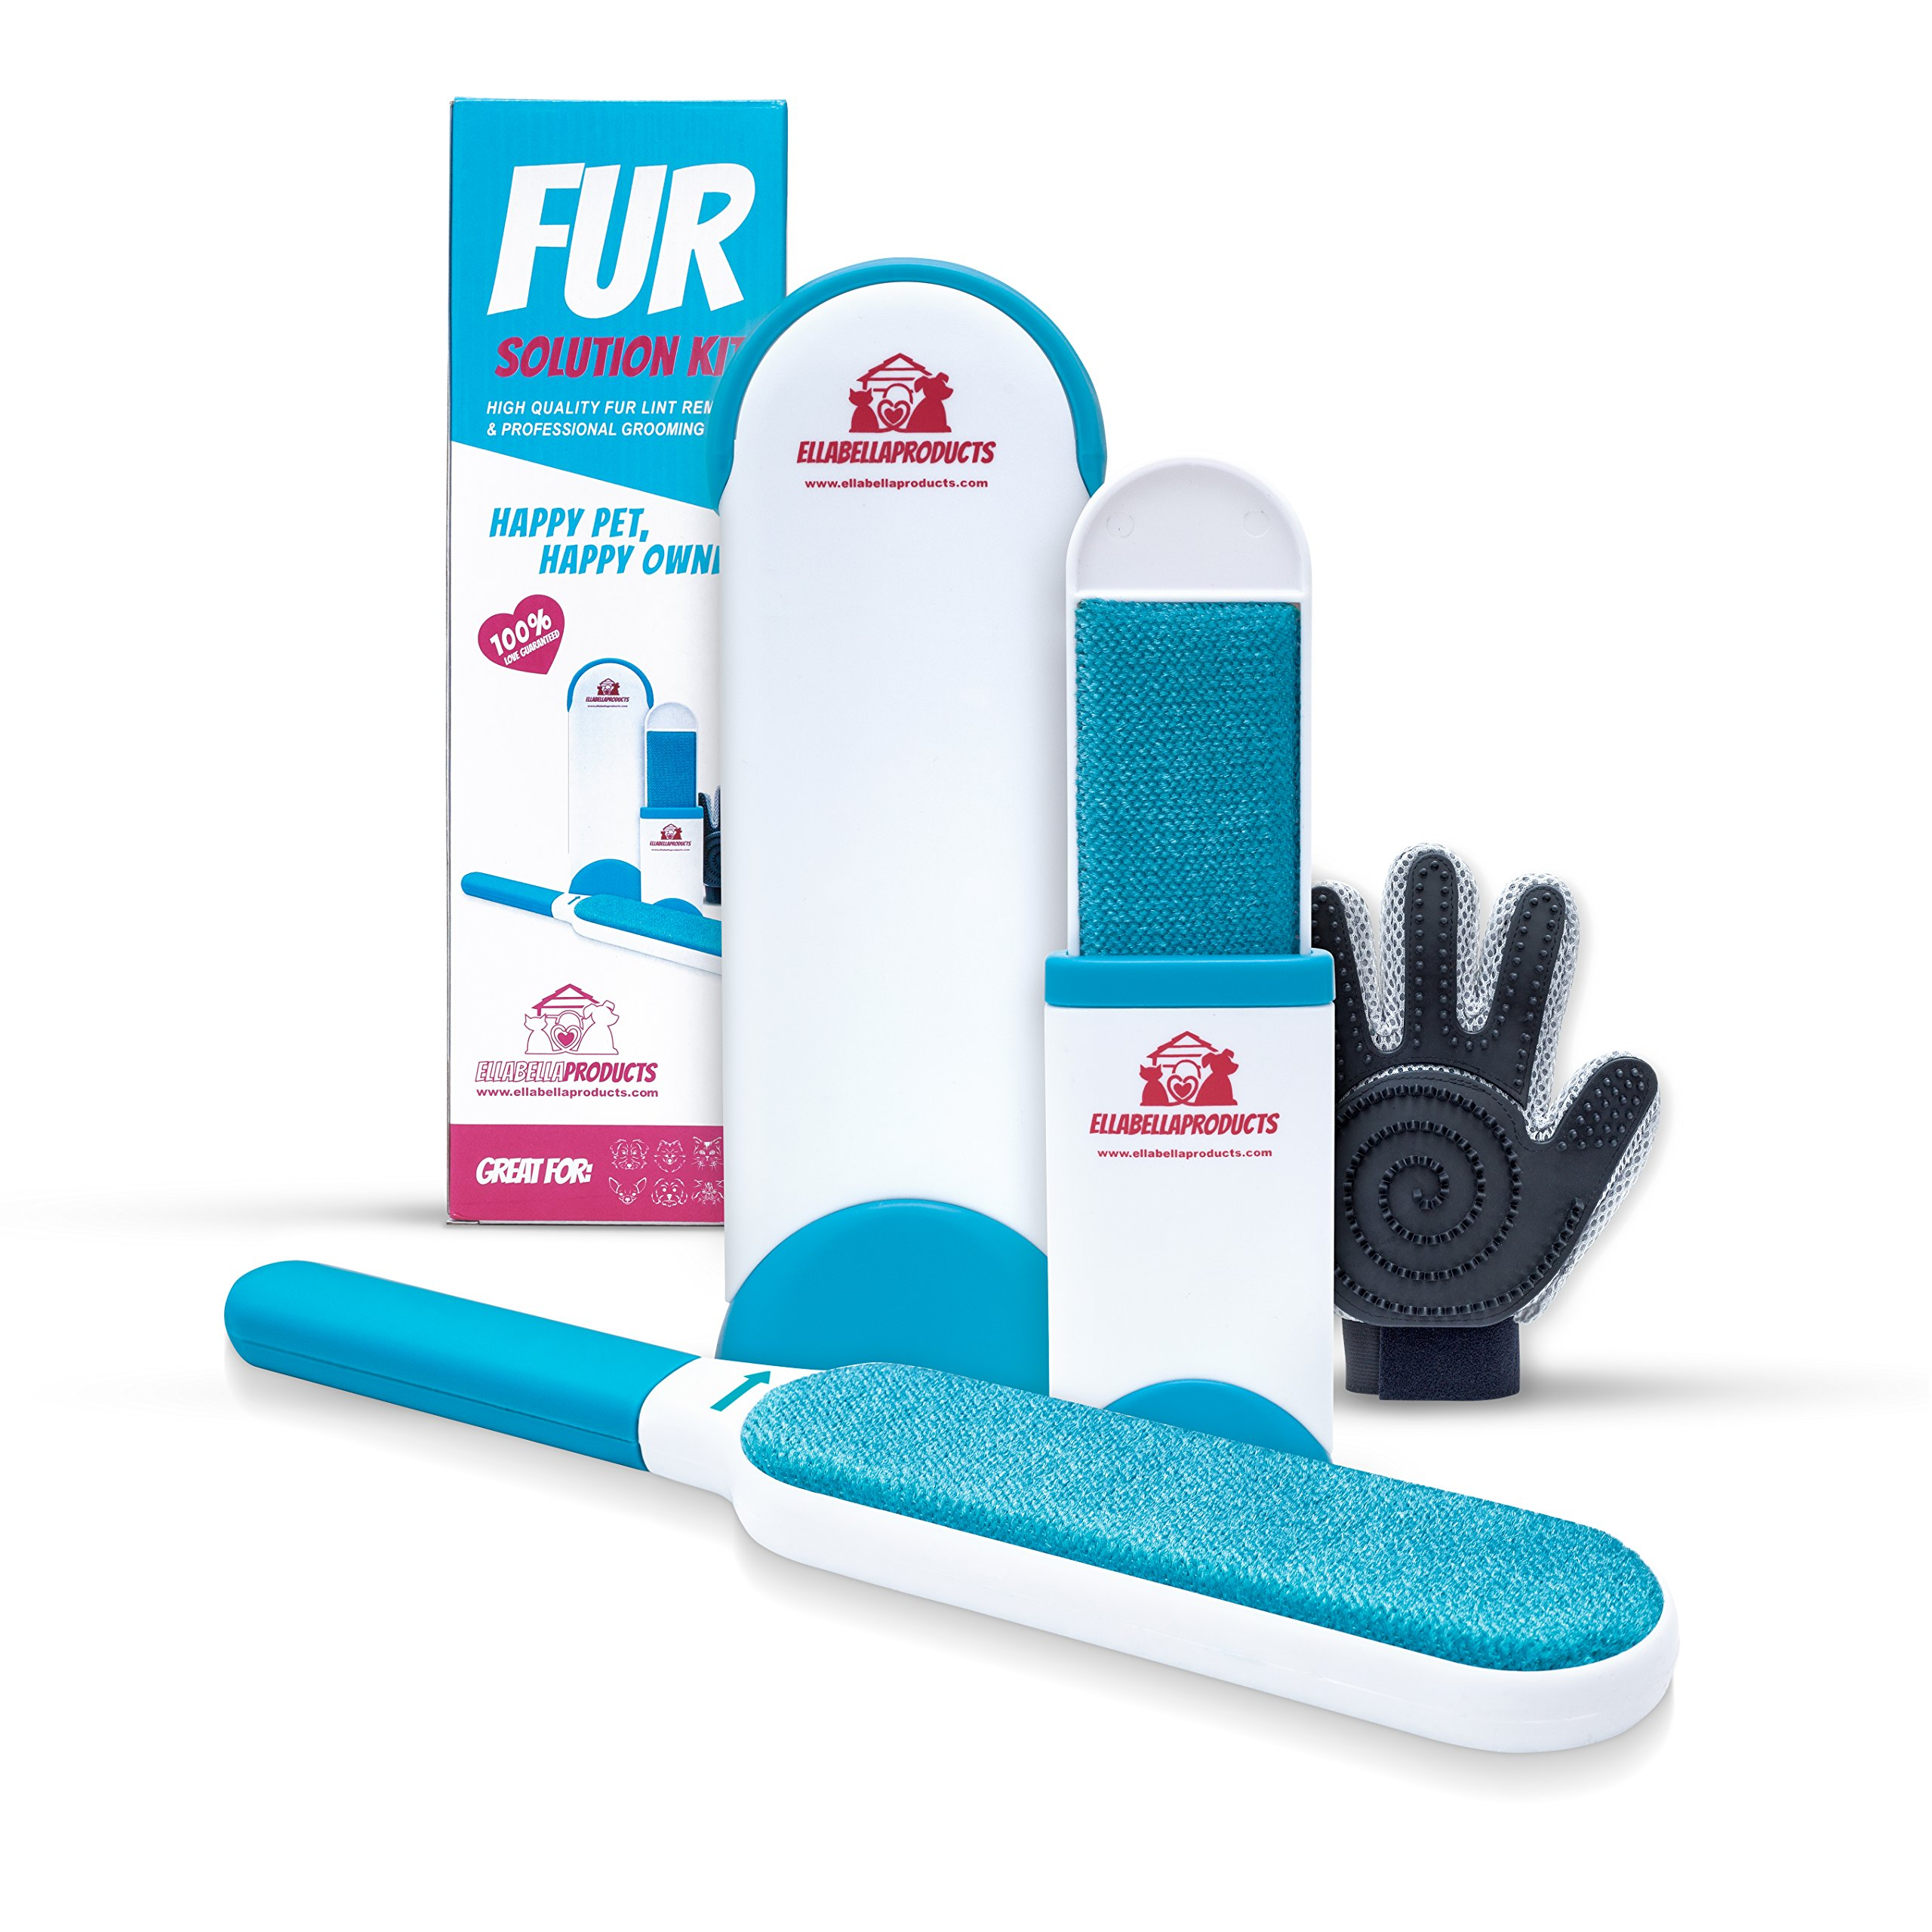 Fur Solution Kit, Fur & Lint Removal, Reusable Self Cleaning Pet Hair Brush, Fur & Lint Removal Brush Kit - Dog & Cat Hair Remover for Clothes,Furniture,Car,Carpet -Includes Grooming Glove